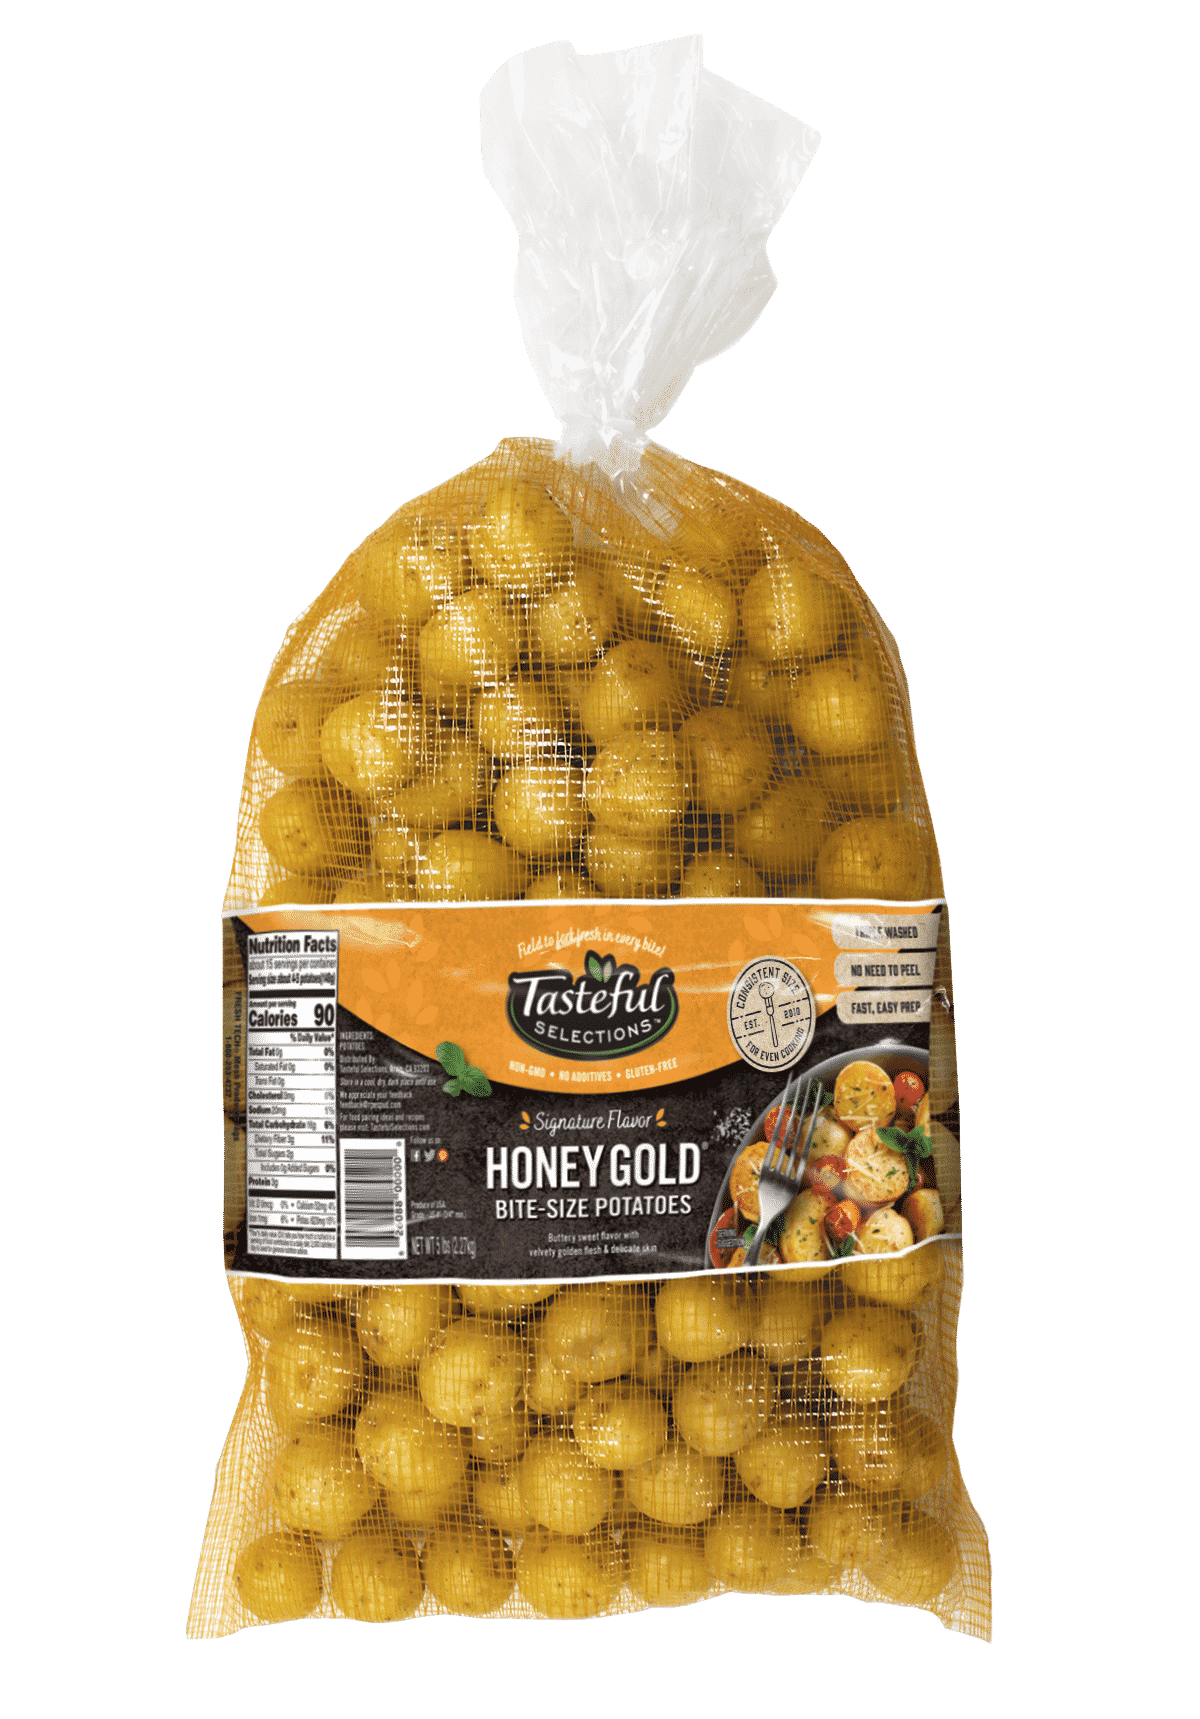 Tasteful Selections Honey Gold Bite-Size Potatoes Mesh Bellyband